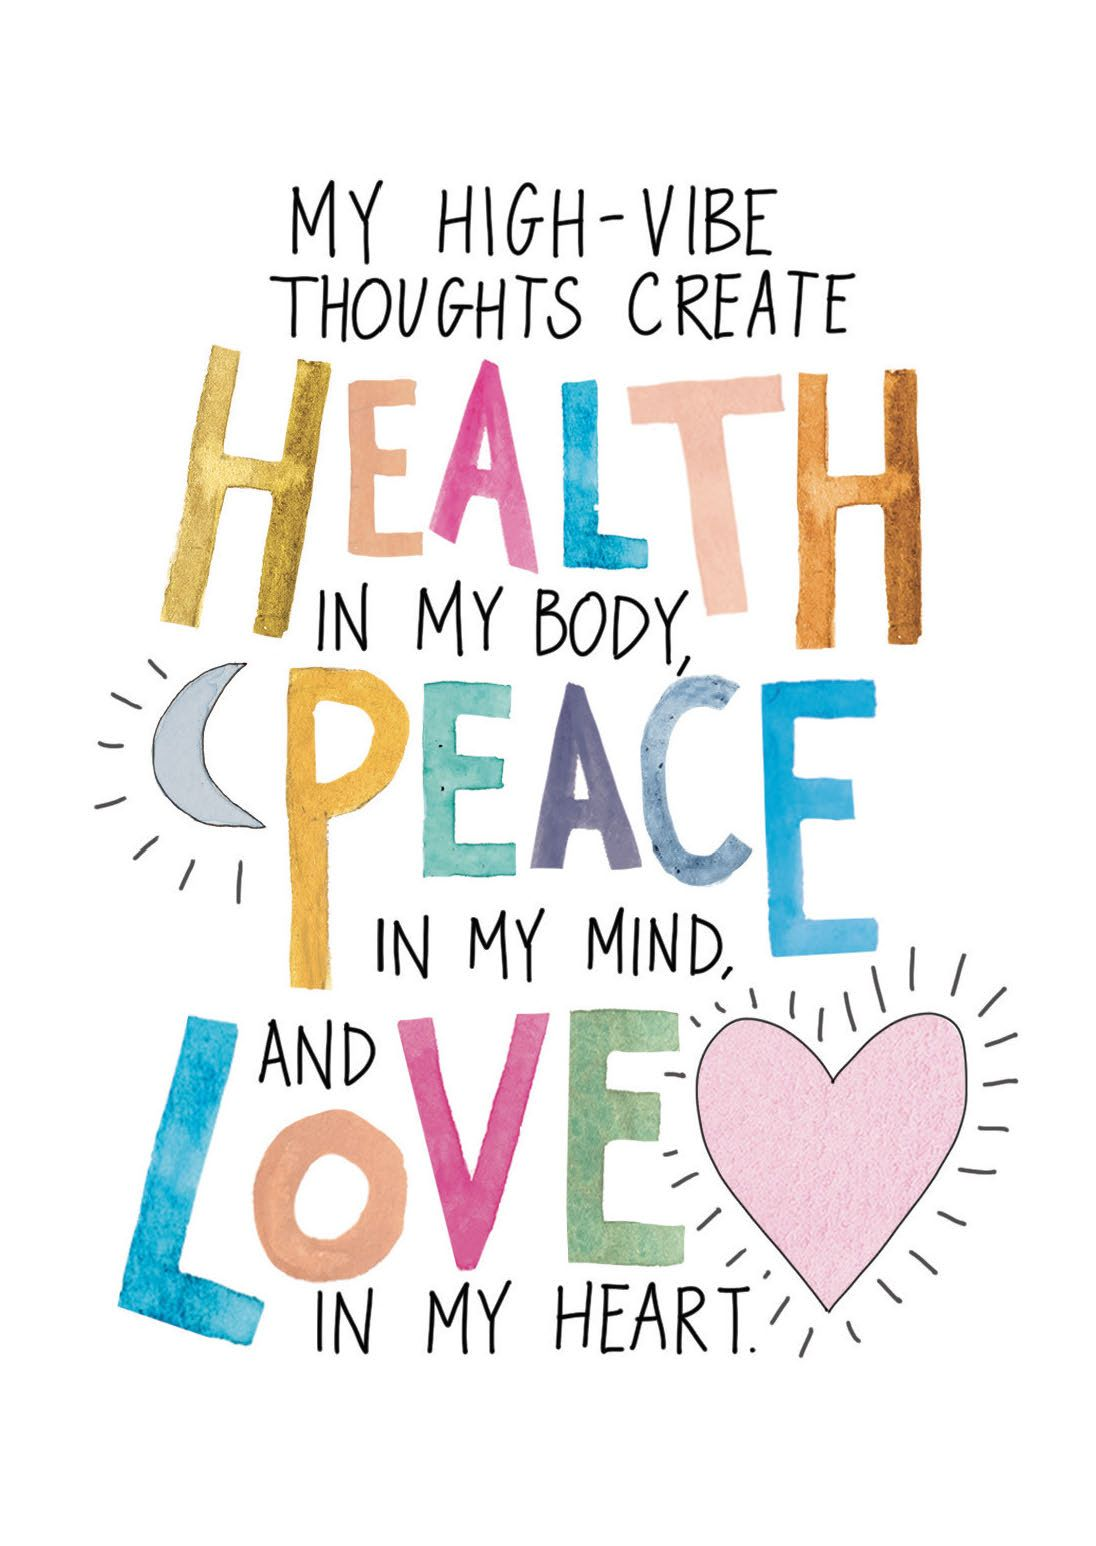 MY HIGH-VIBE THOUGHTS CREATE HEALTH IN MY BODY, PEACE IN MY MIND, AND LOVE IN MY HEART.